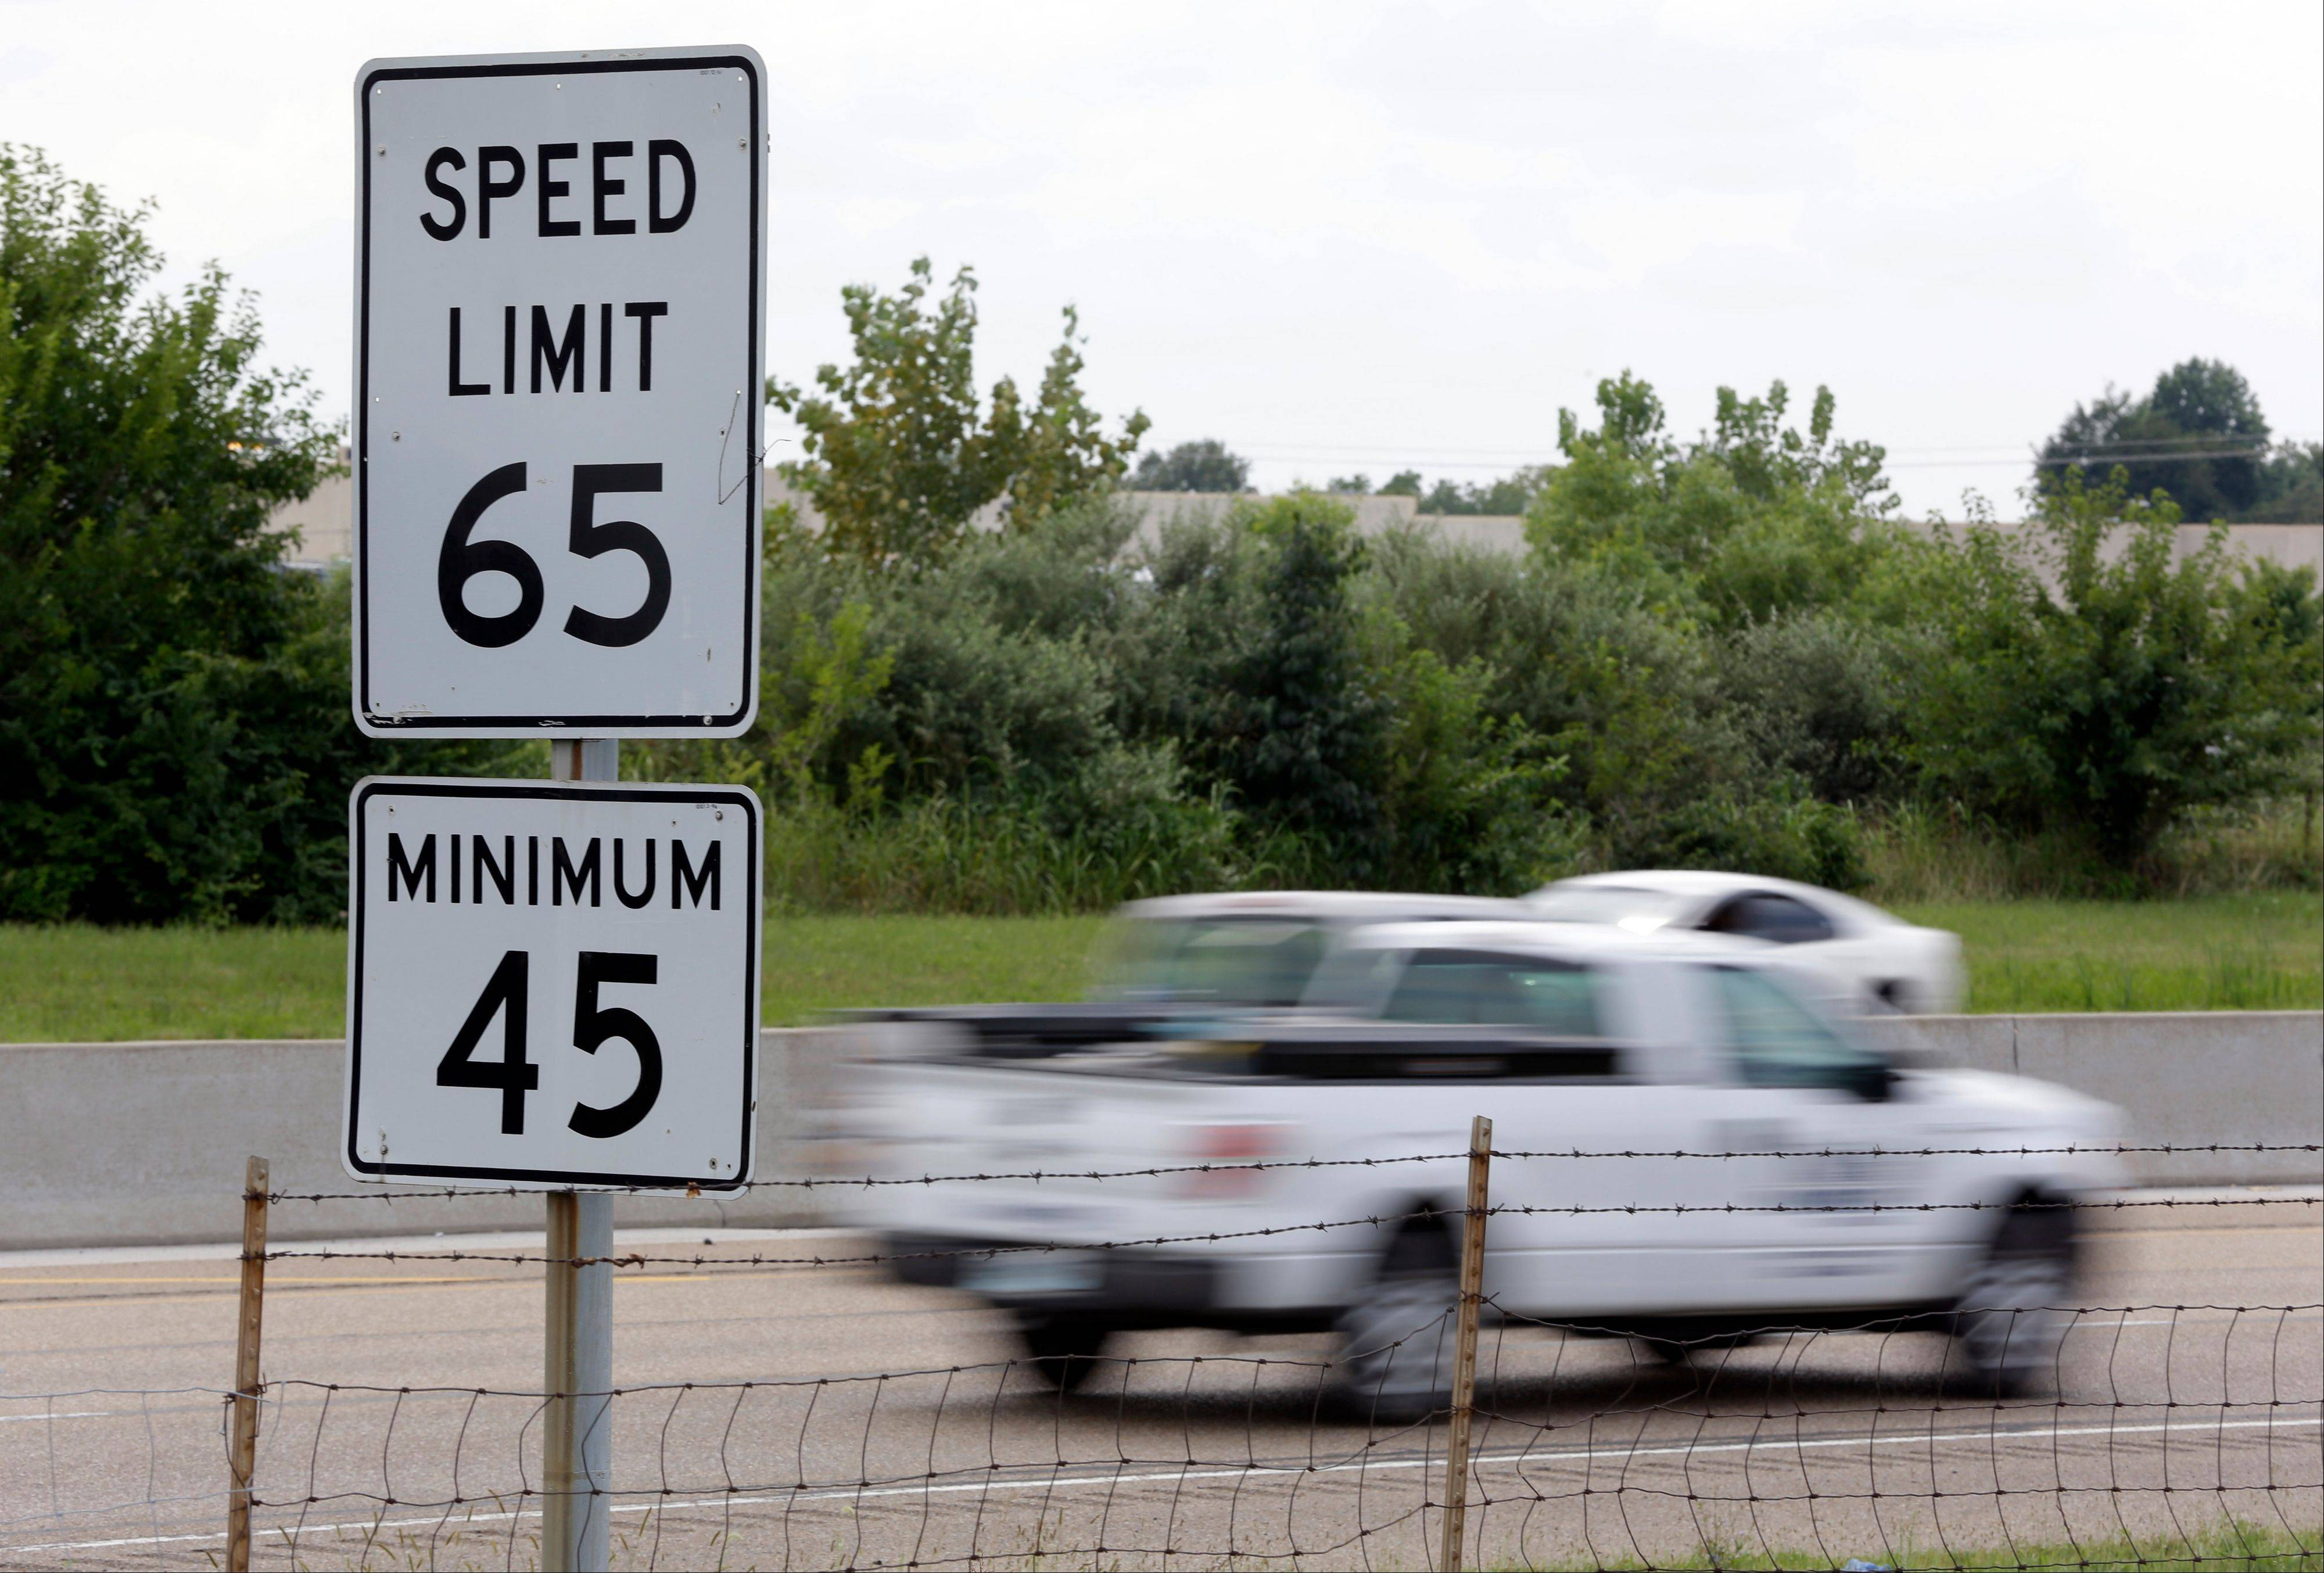 ASSOCIATED PRESSVehicles pass a speed limit sign along Interstate 64 in O'Fallon, Ill. Gov. Pat Quinn has until Monday to sign or veto legislation that would raise the speed limit on rural interstates in Illinois from 65 mph to 70 mph starting in January.